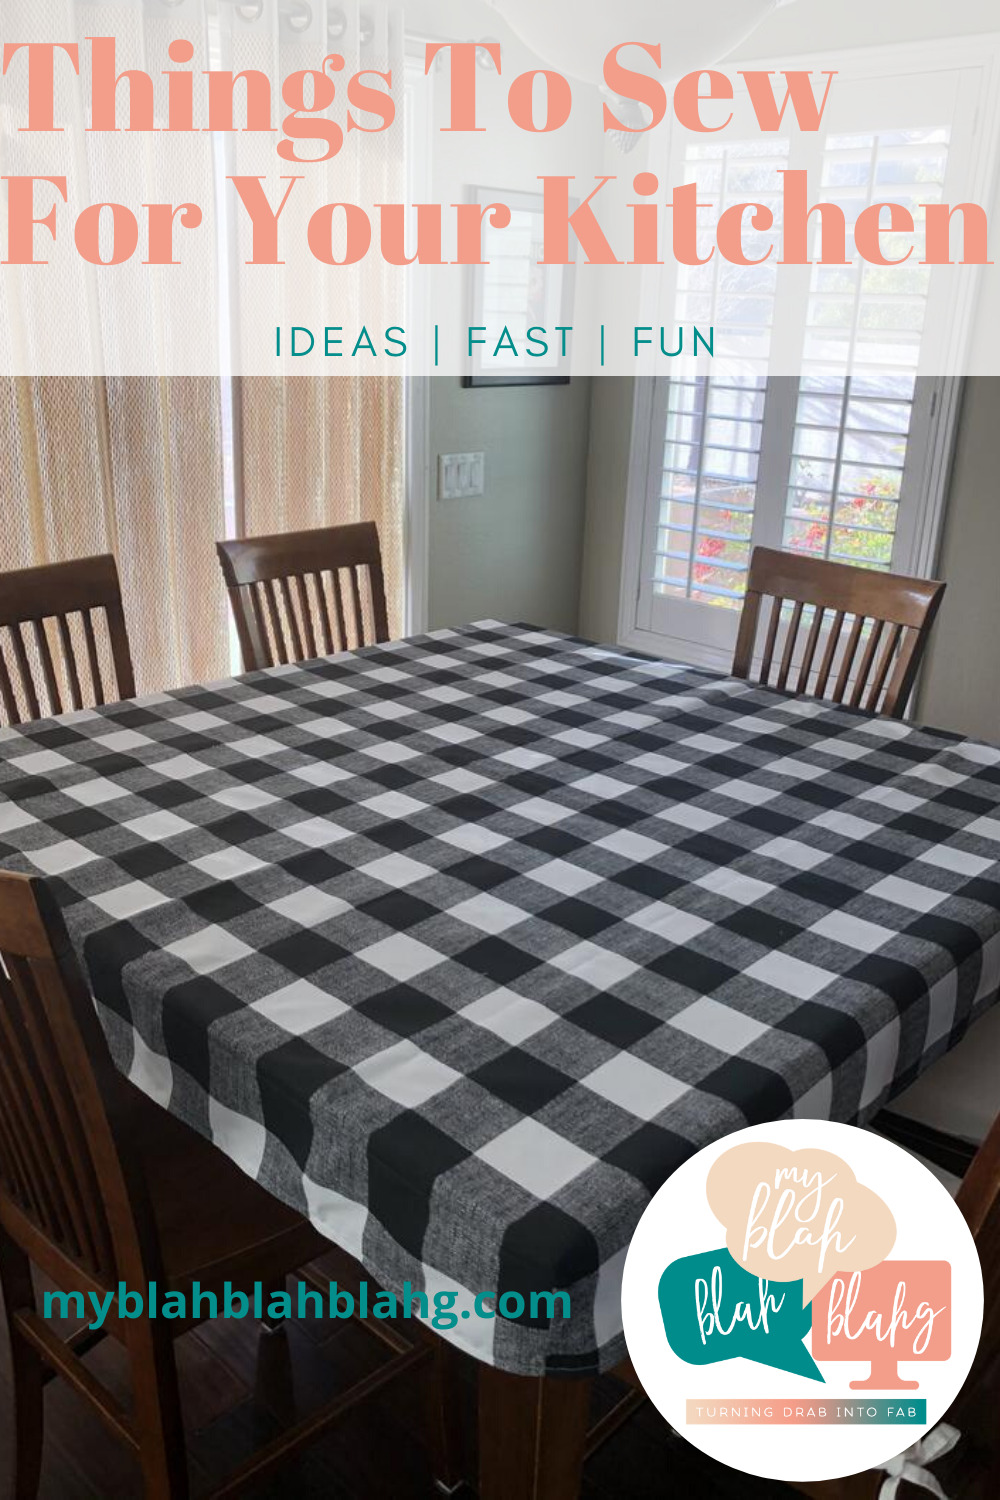 Why buy when you can make them yourself? 12 Things to sew for your kitchen that you need to see. Towels, hot pads, aprons and tablecloths are easy to make and can save you money over buying. #myblahblahblahgblog #thingstosewforyourkitchen #sewingprojects